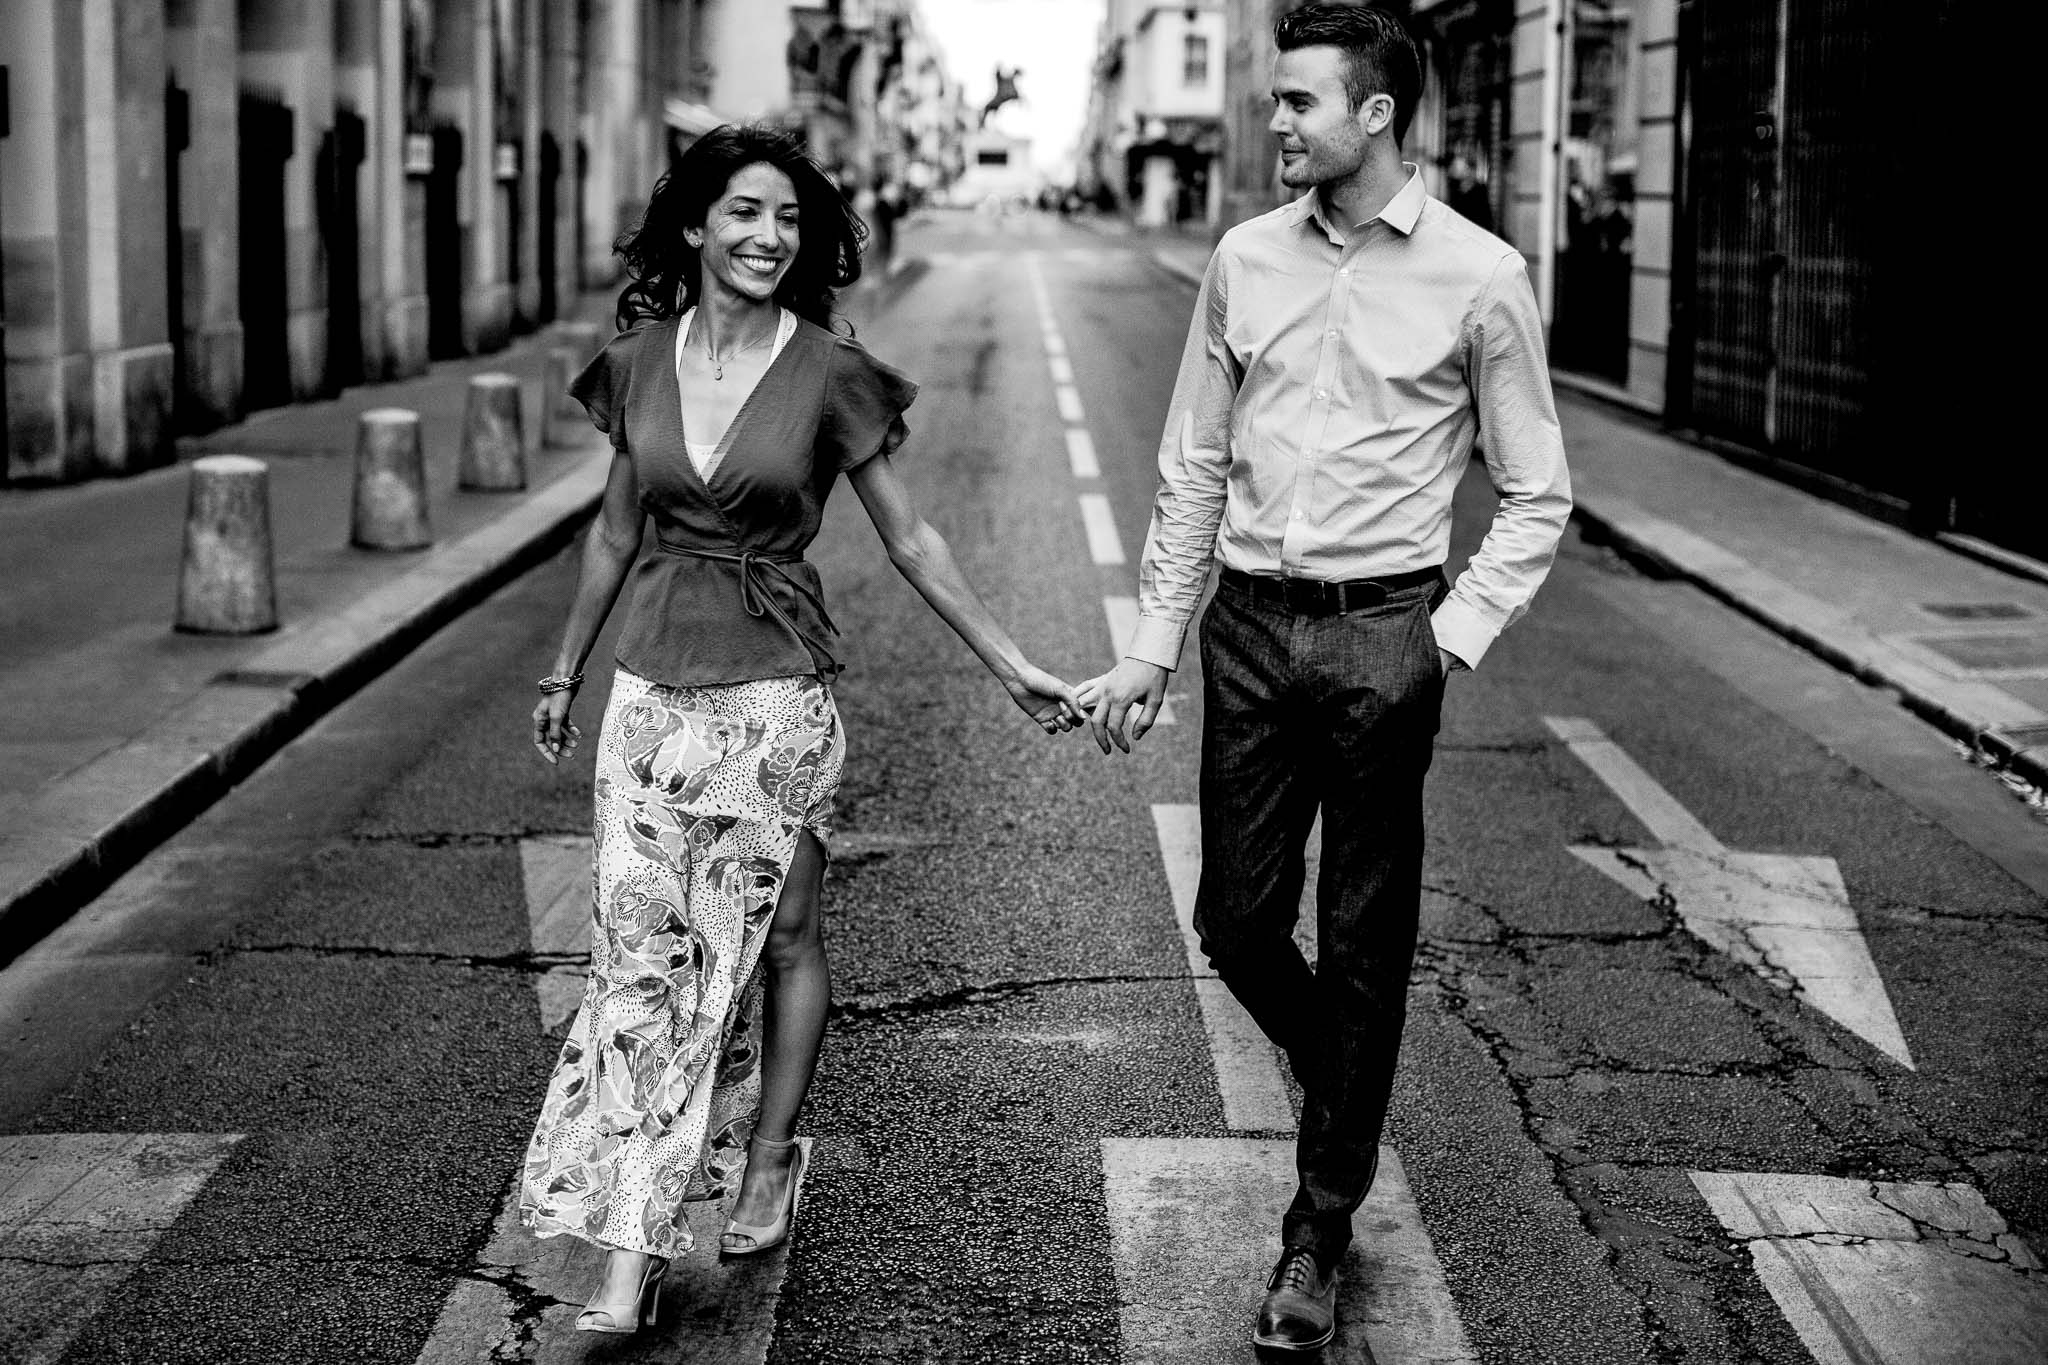 Engagement photo in Paris while walking and laughing